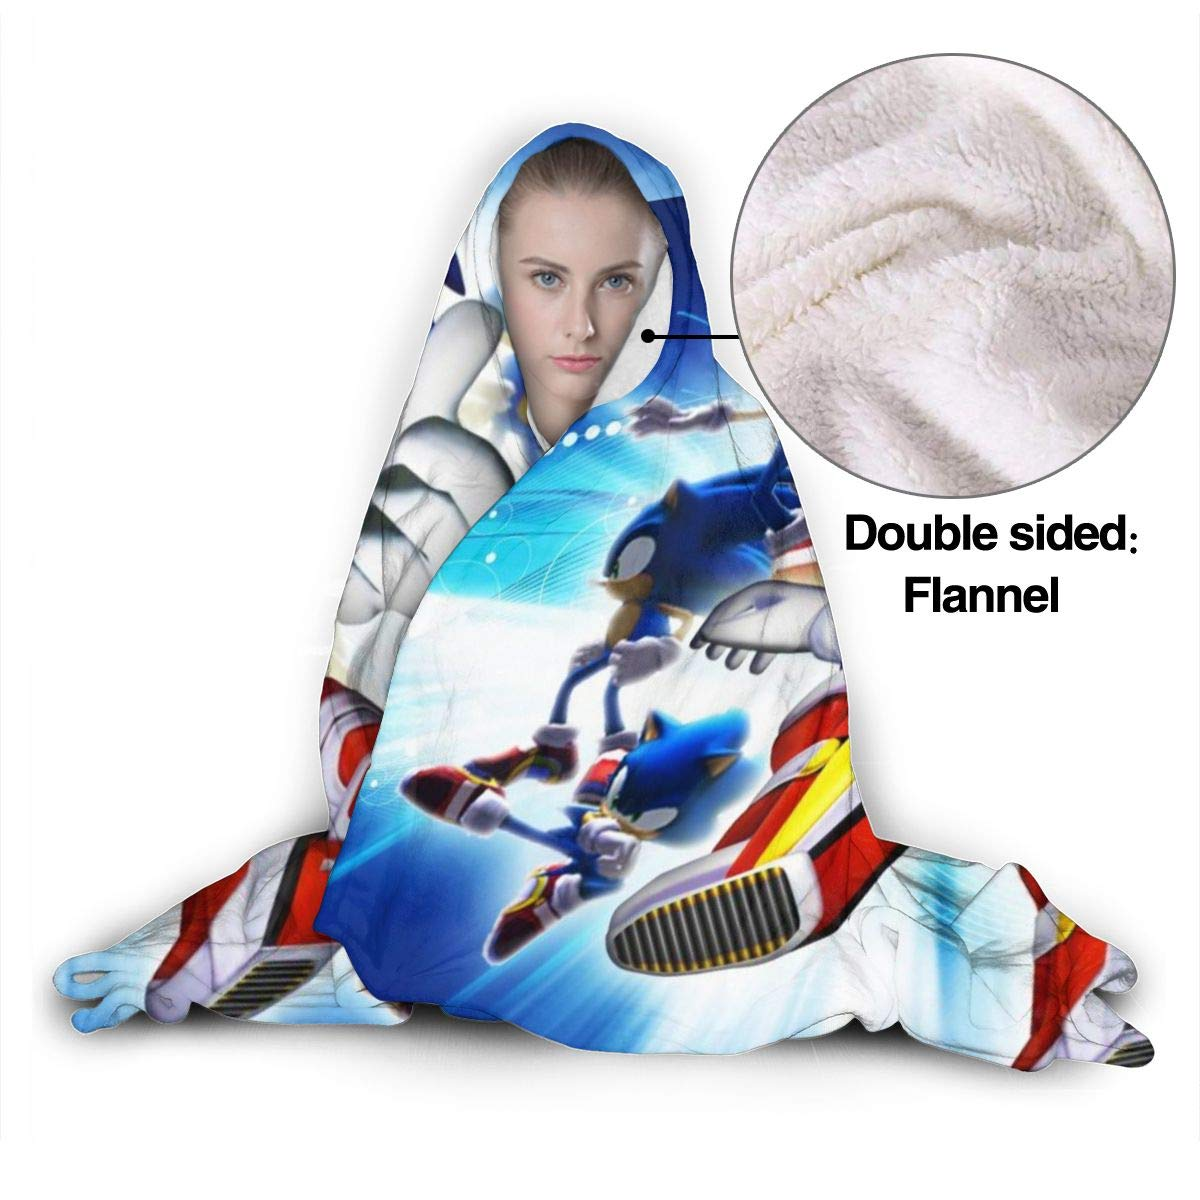 Against Shedding Cloak Shawl Wrap Spring Wearable Blankets for Boys Girls Sonic Adventure 2 Game Art Poster Hooded Blankets for Wedding Gift Park 50 x40 inch